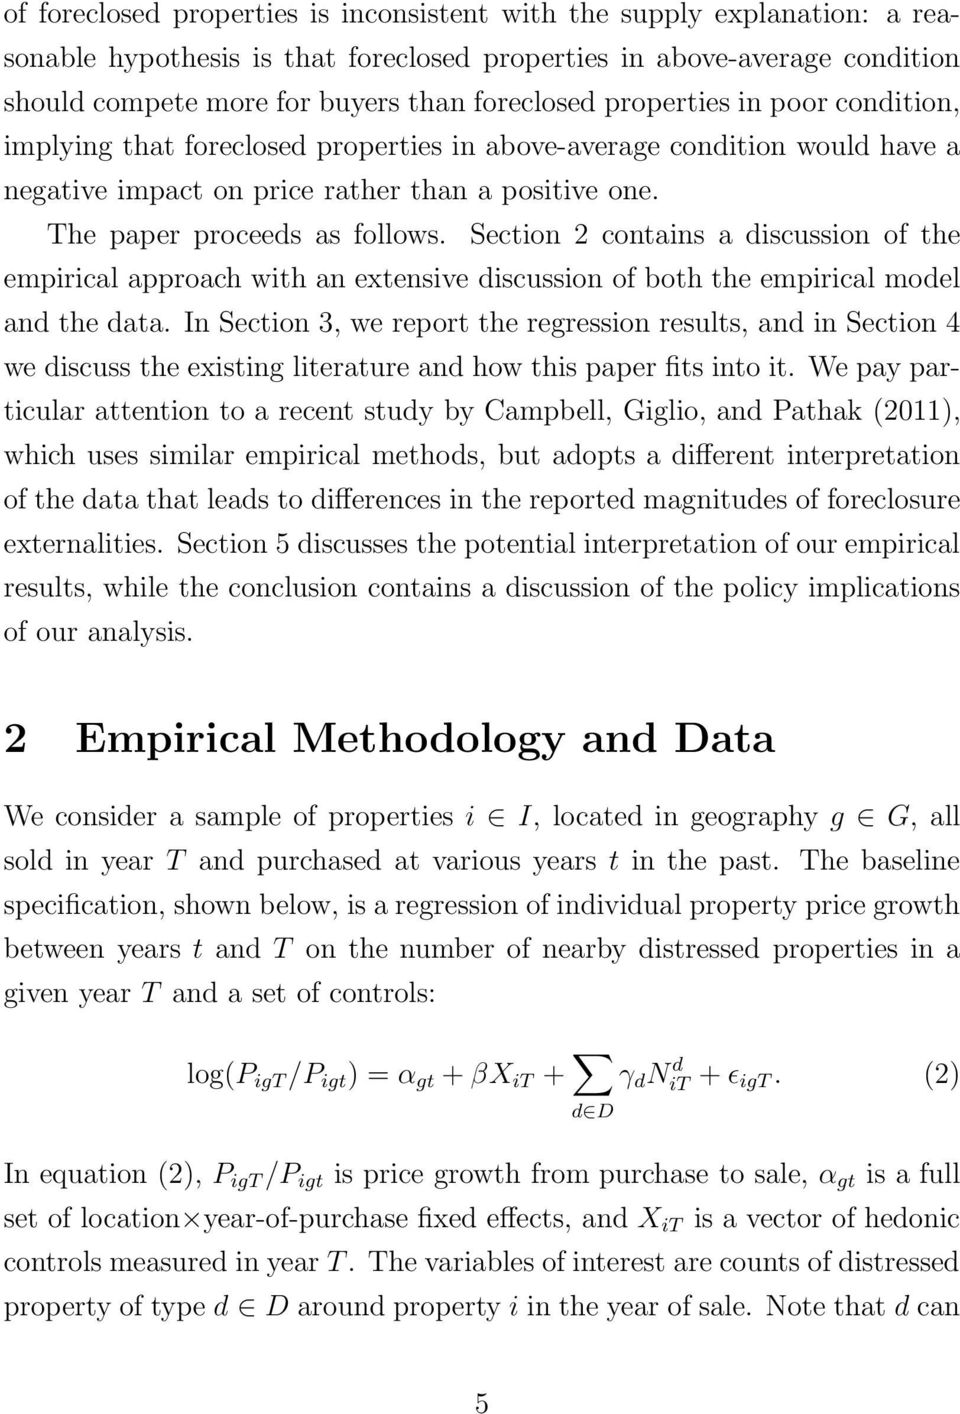 Section 2 contains a discussion of the empirical approach with an extensive discussion of both the empirical model and the data.